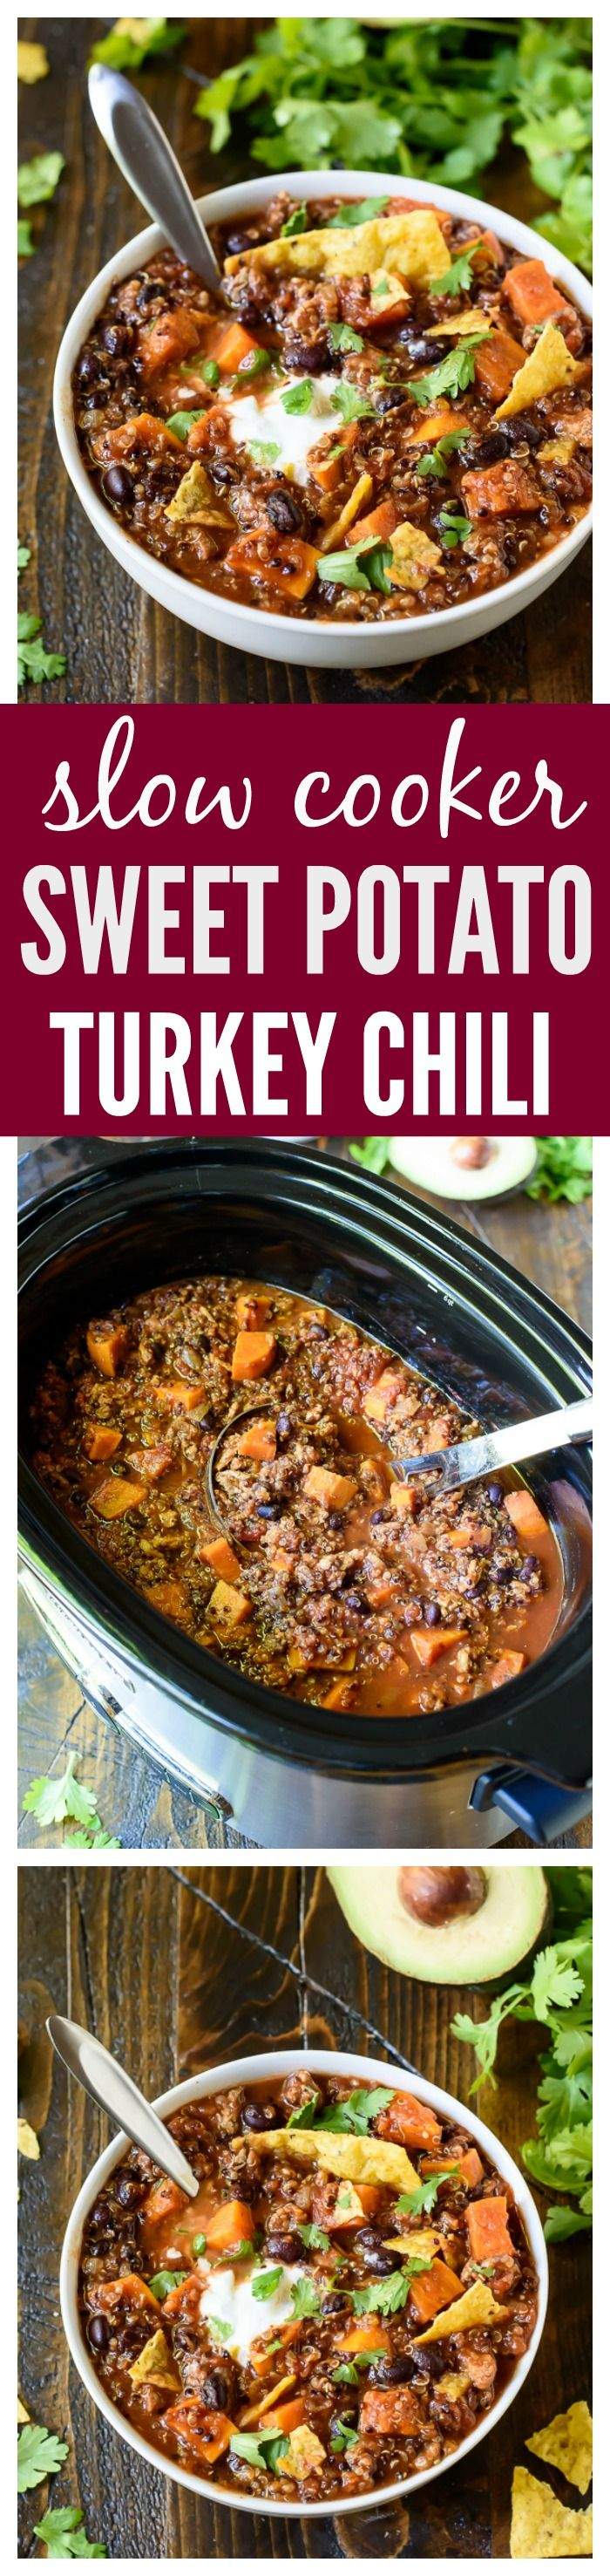 Slow Cooker Sweet Potato Turkey Chili with Quinoa and Black Beans.